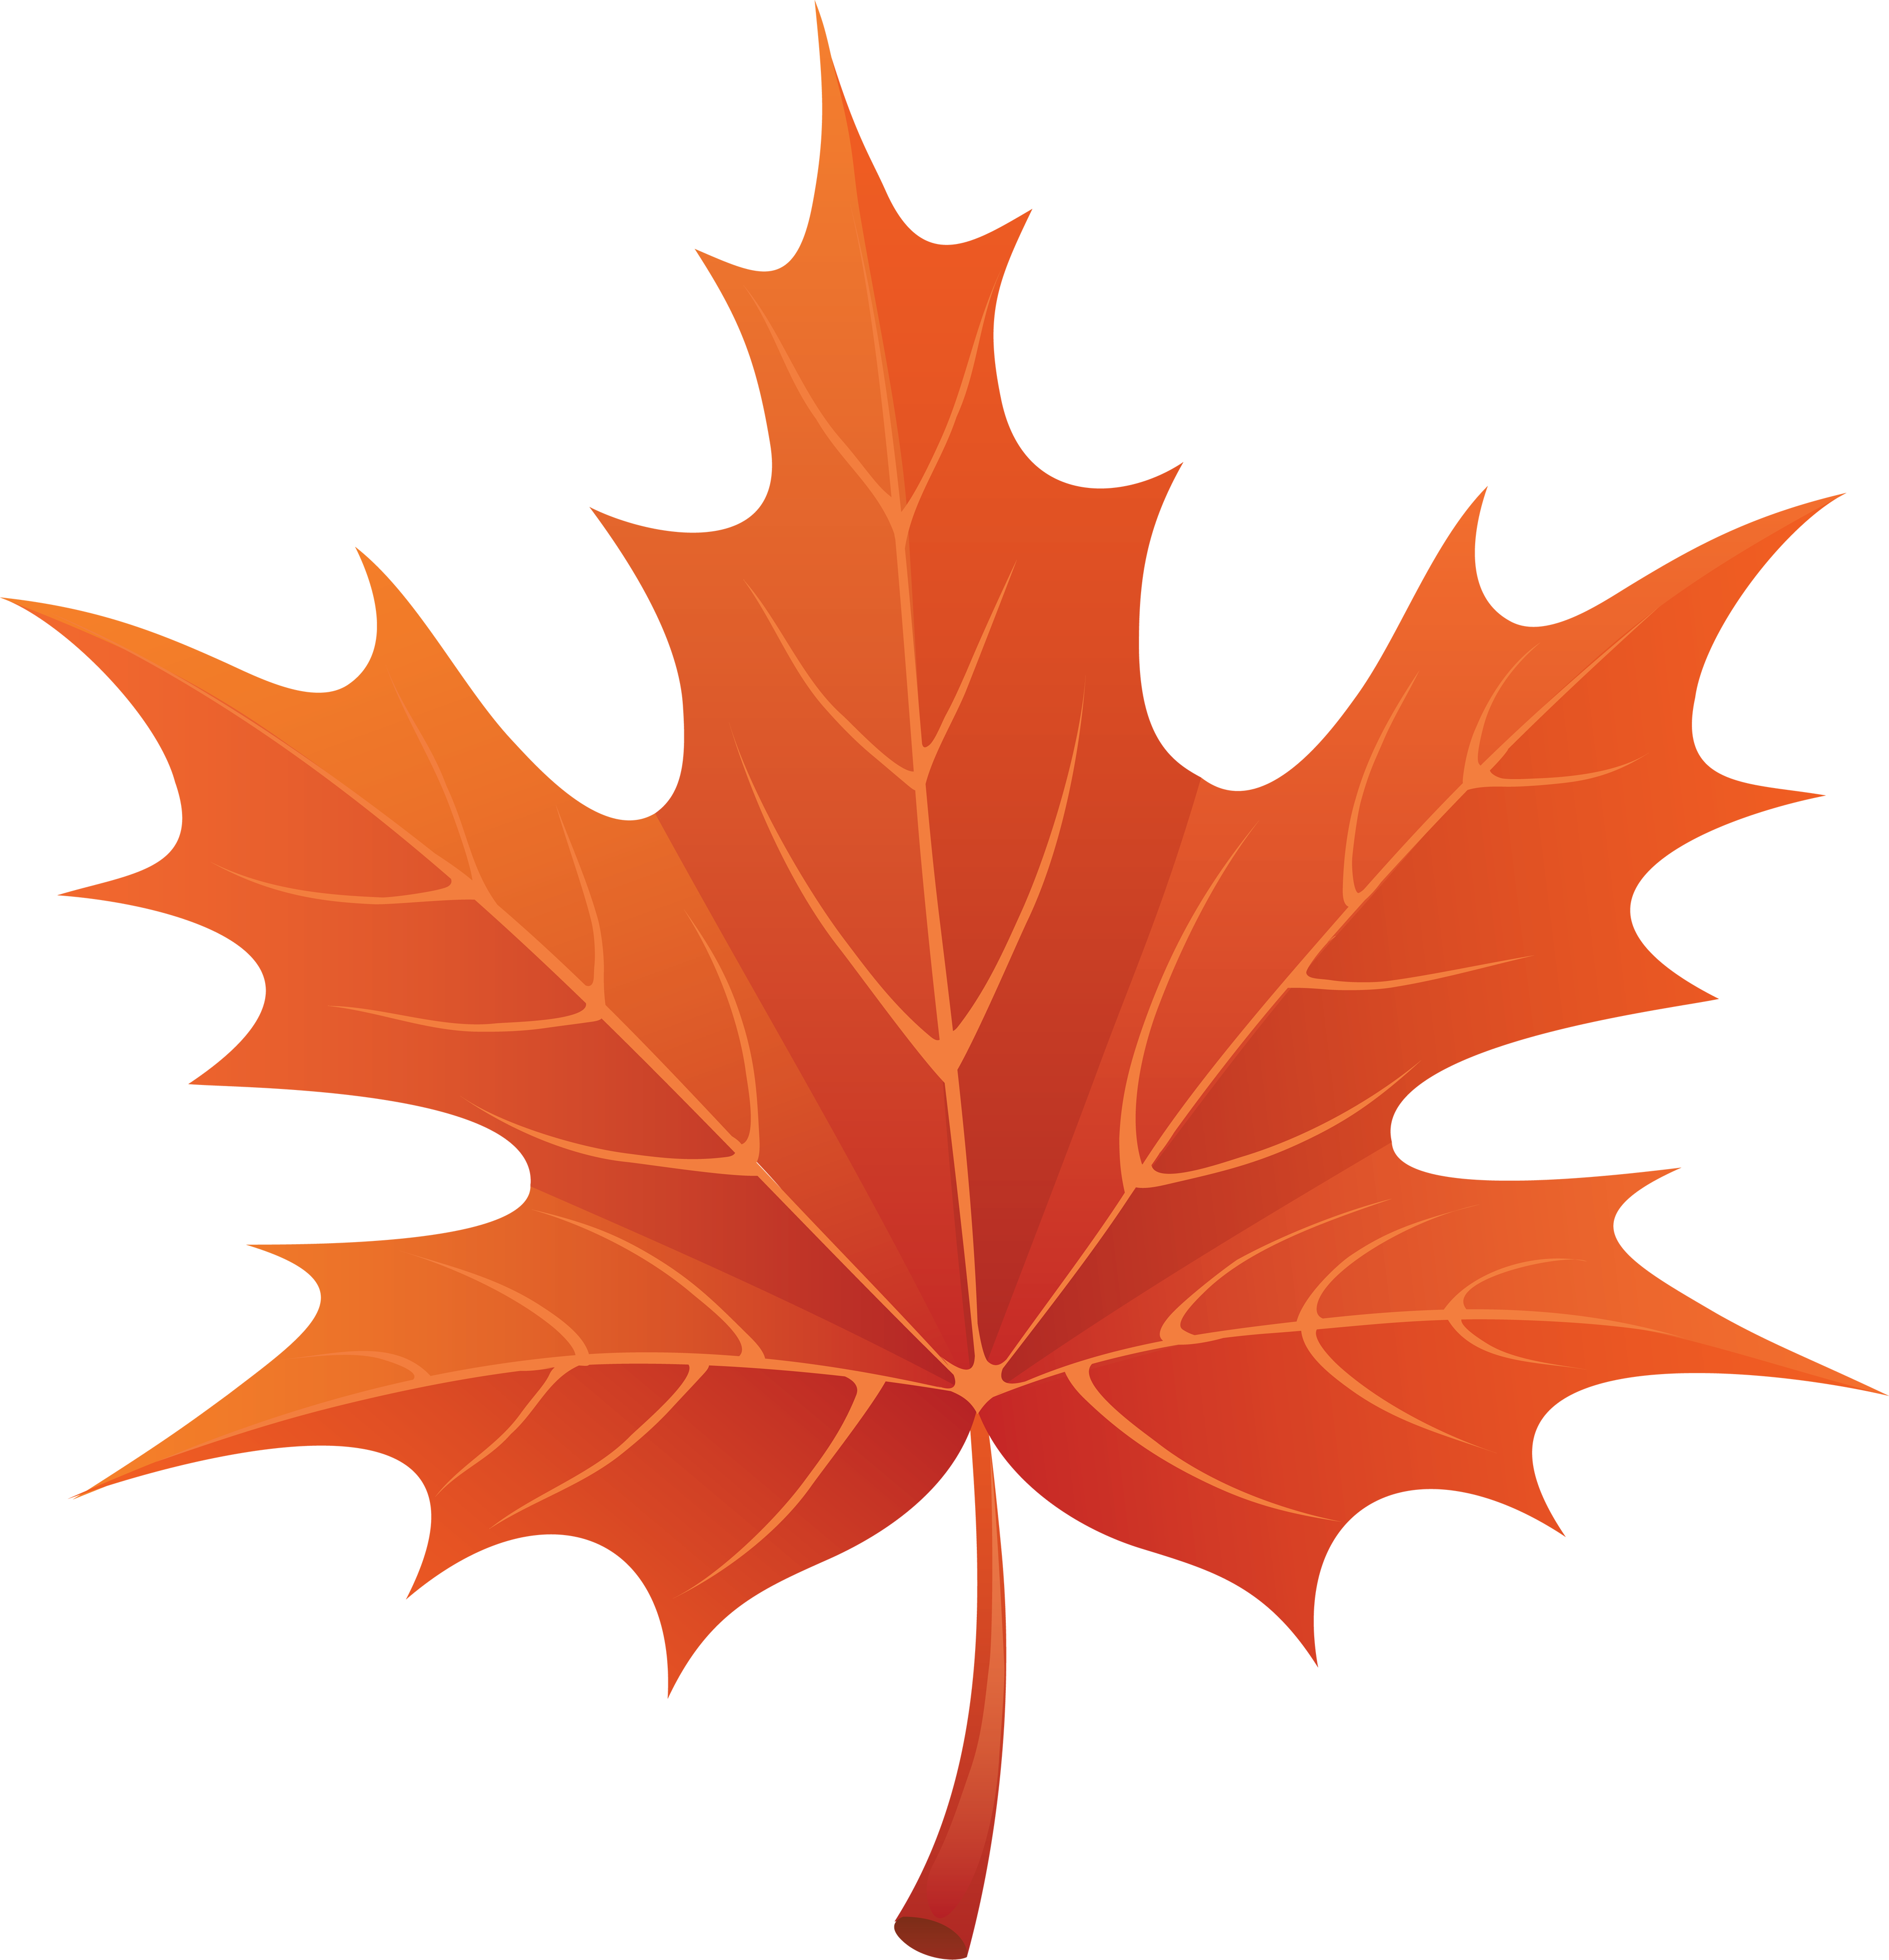 Maple Leaves Clipart - Clipart Suggest-Maple Leaves Clipart - Clipart Suggest-10